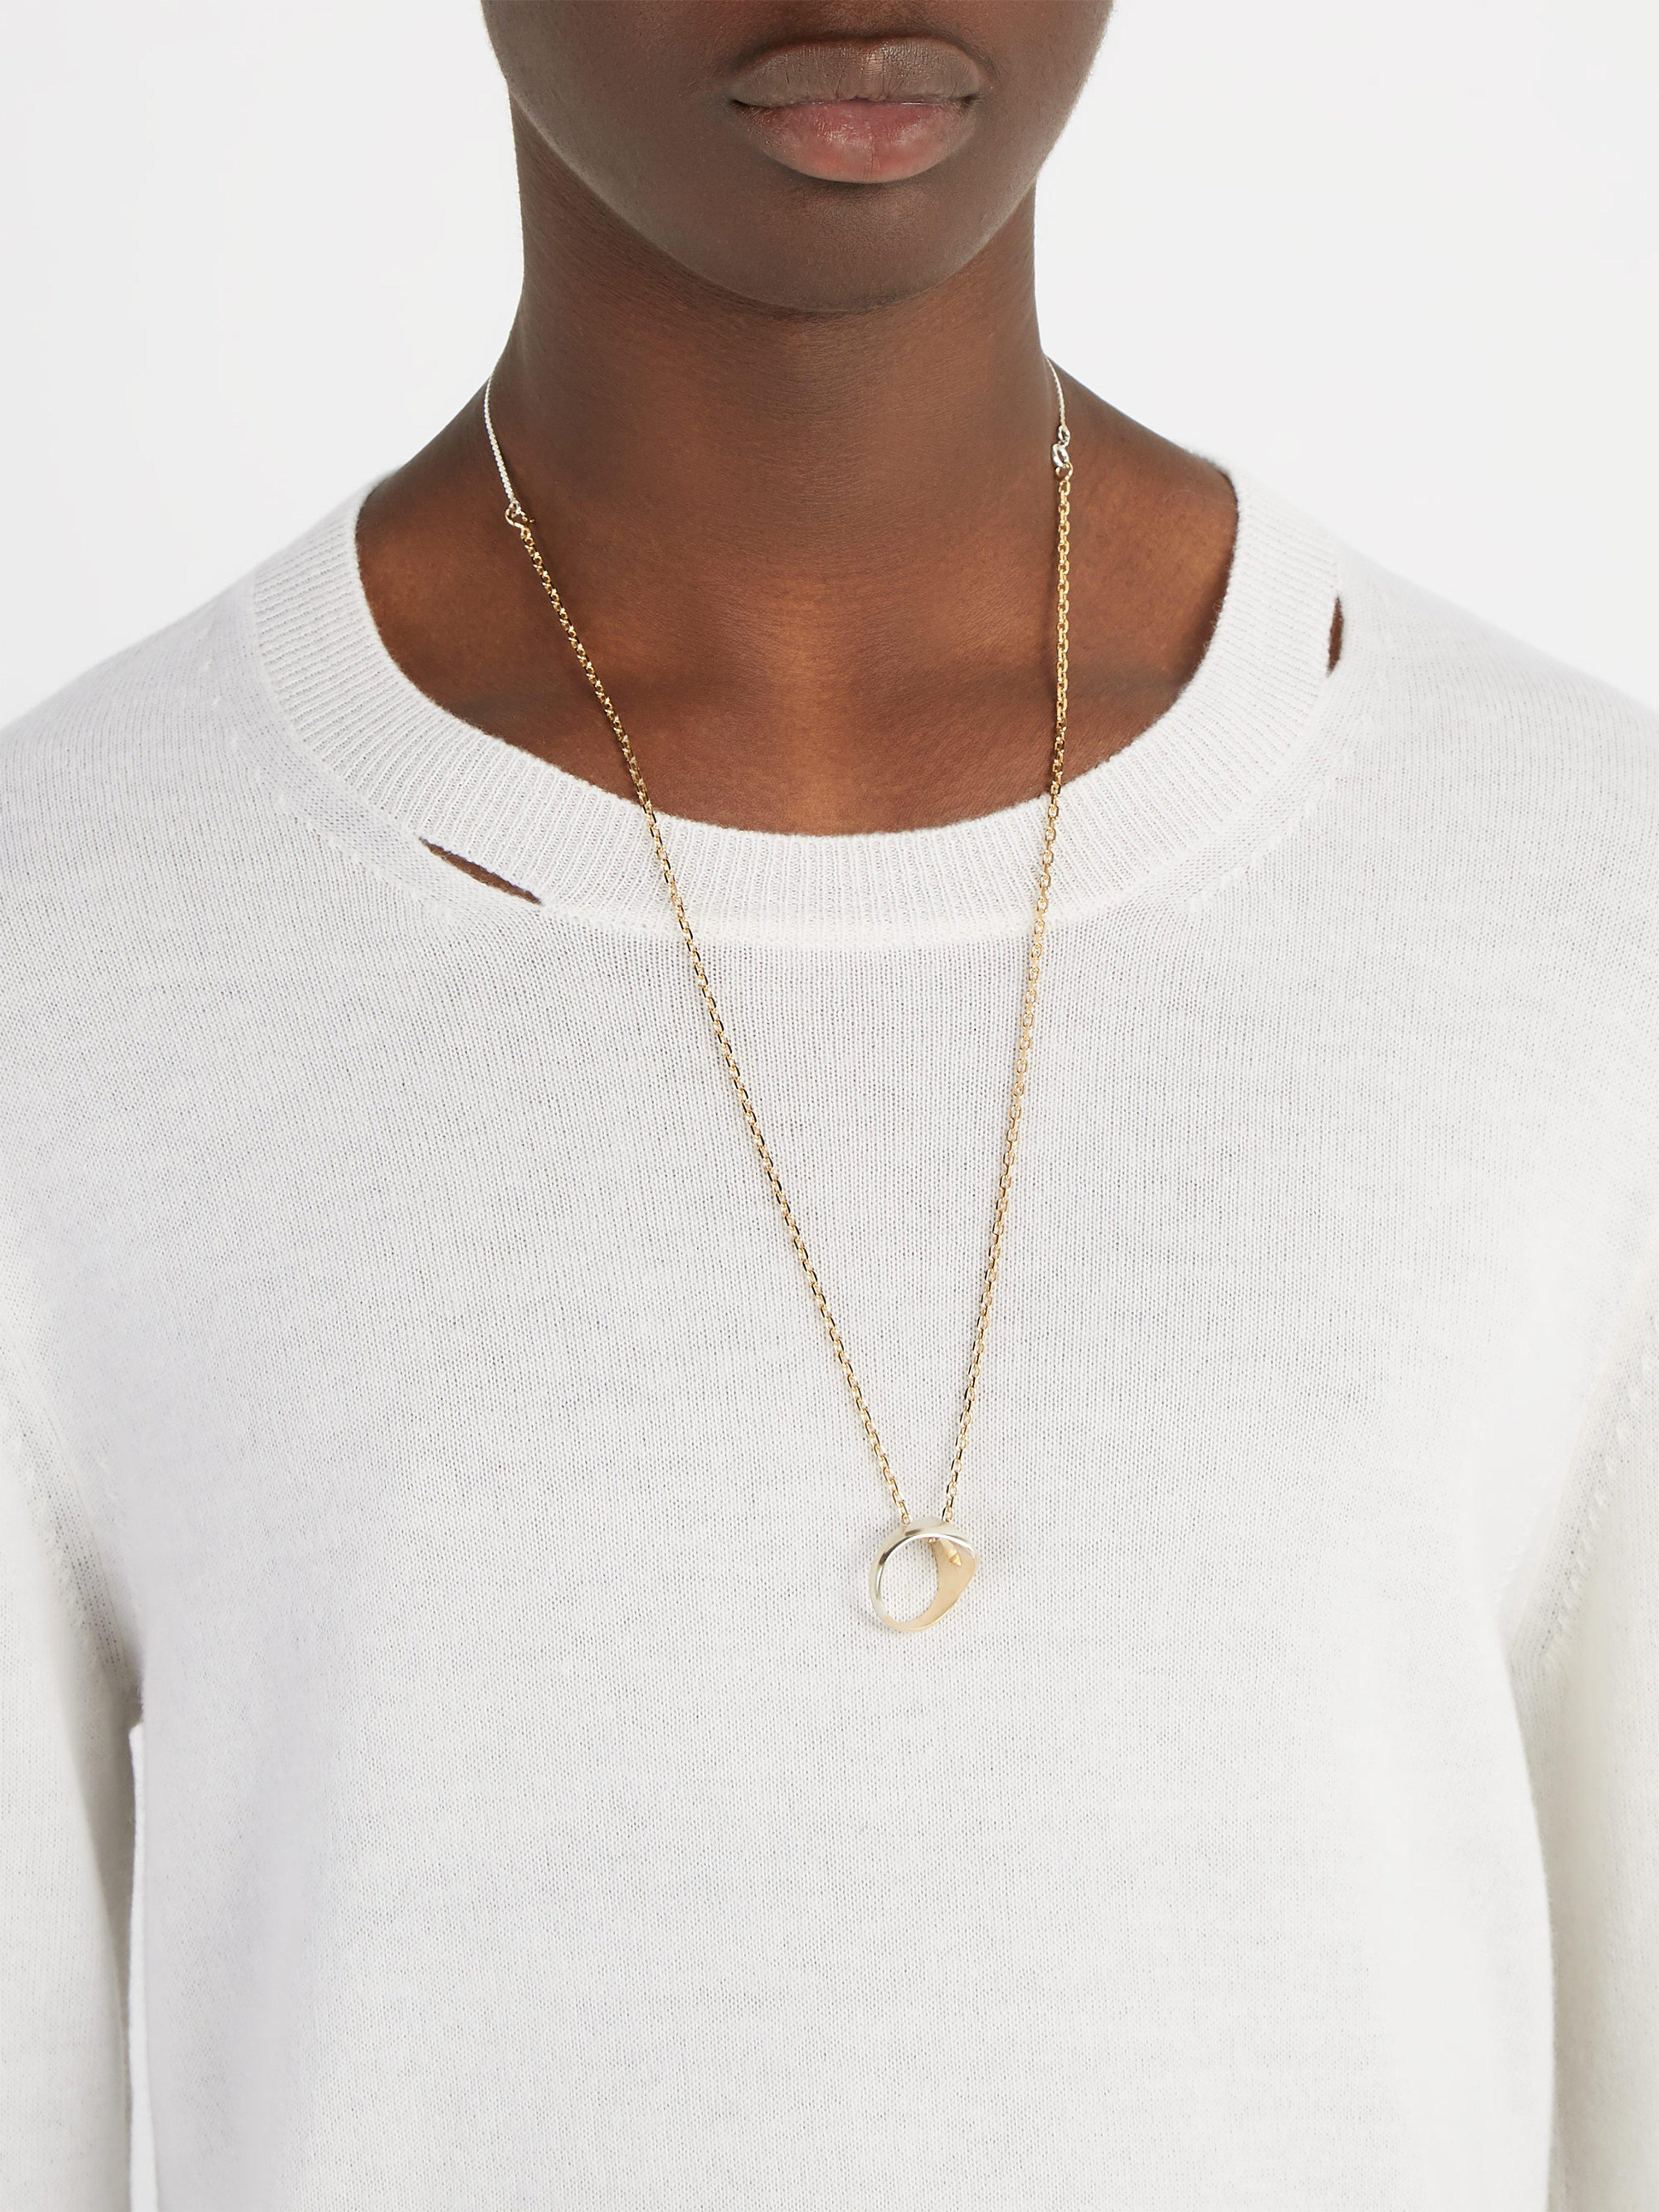 Maison Margiela Three-in-one Necklace in Metallic for Men